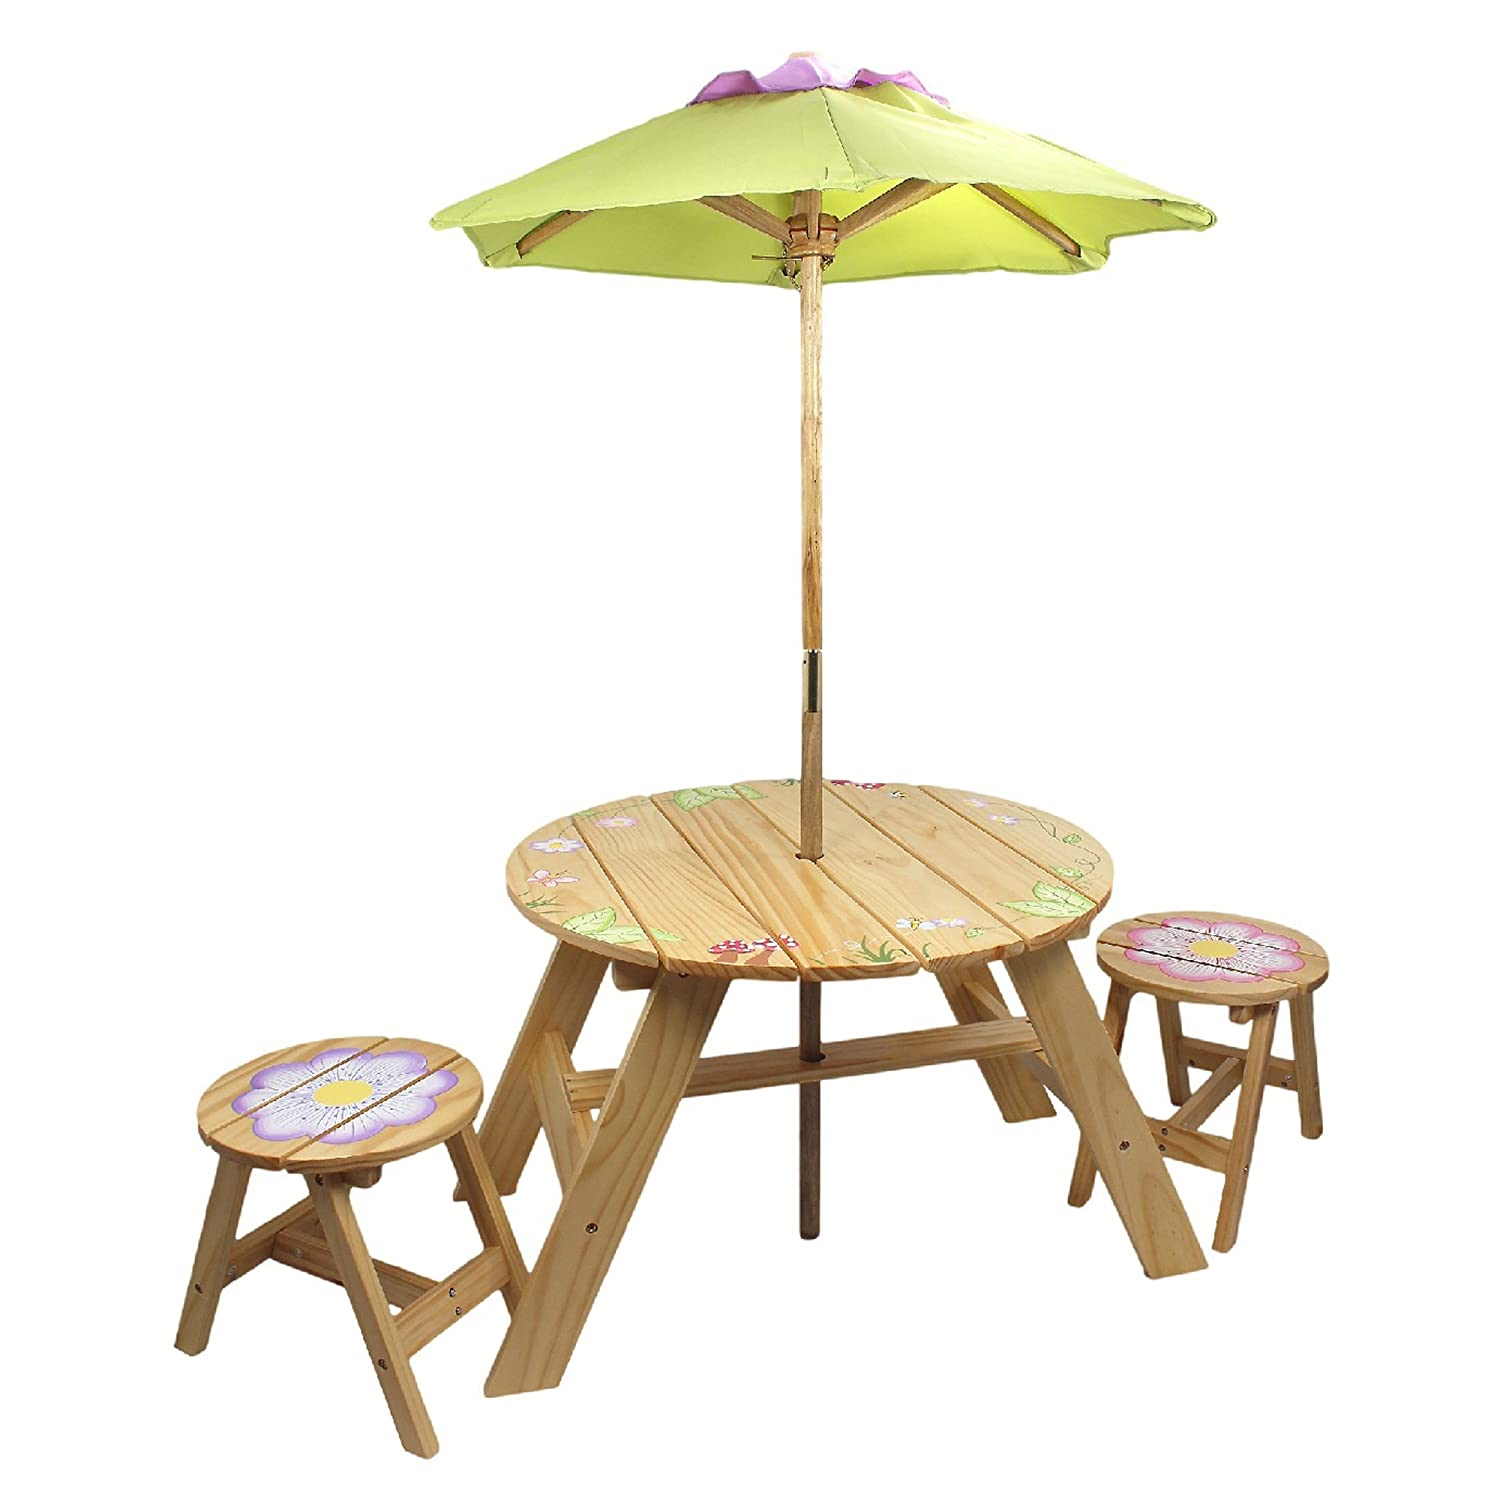 Fantasy Fields Kids Wooden Outdoor Table and Chair Set with Parasol Umbrella - Magic Garden Teamson TD-0029A